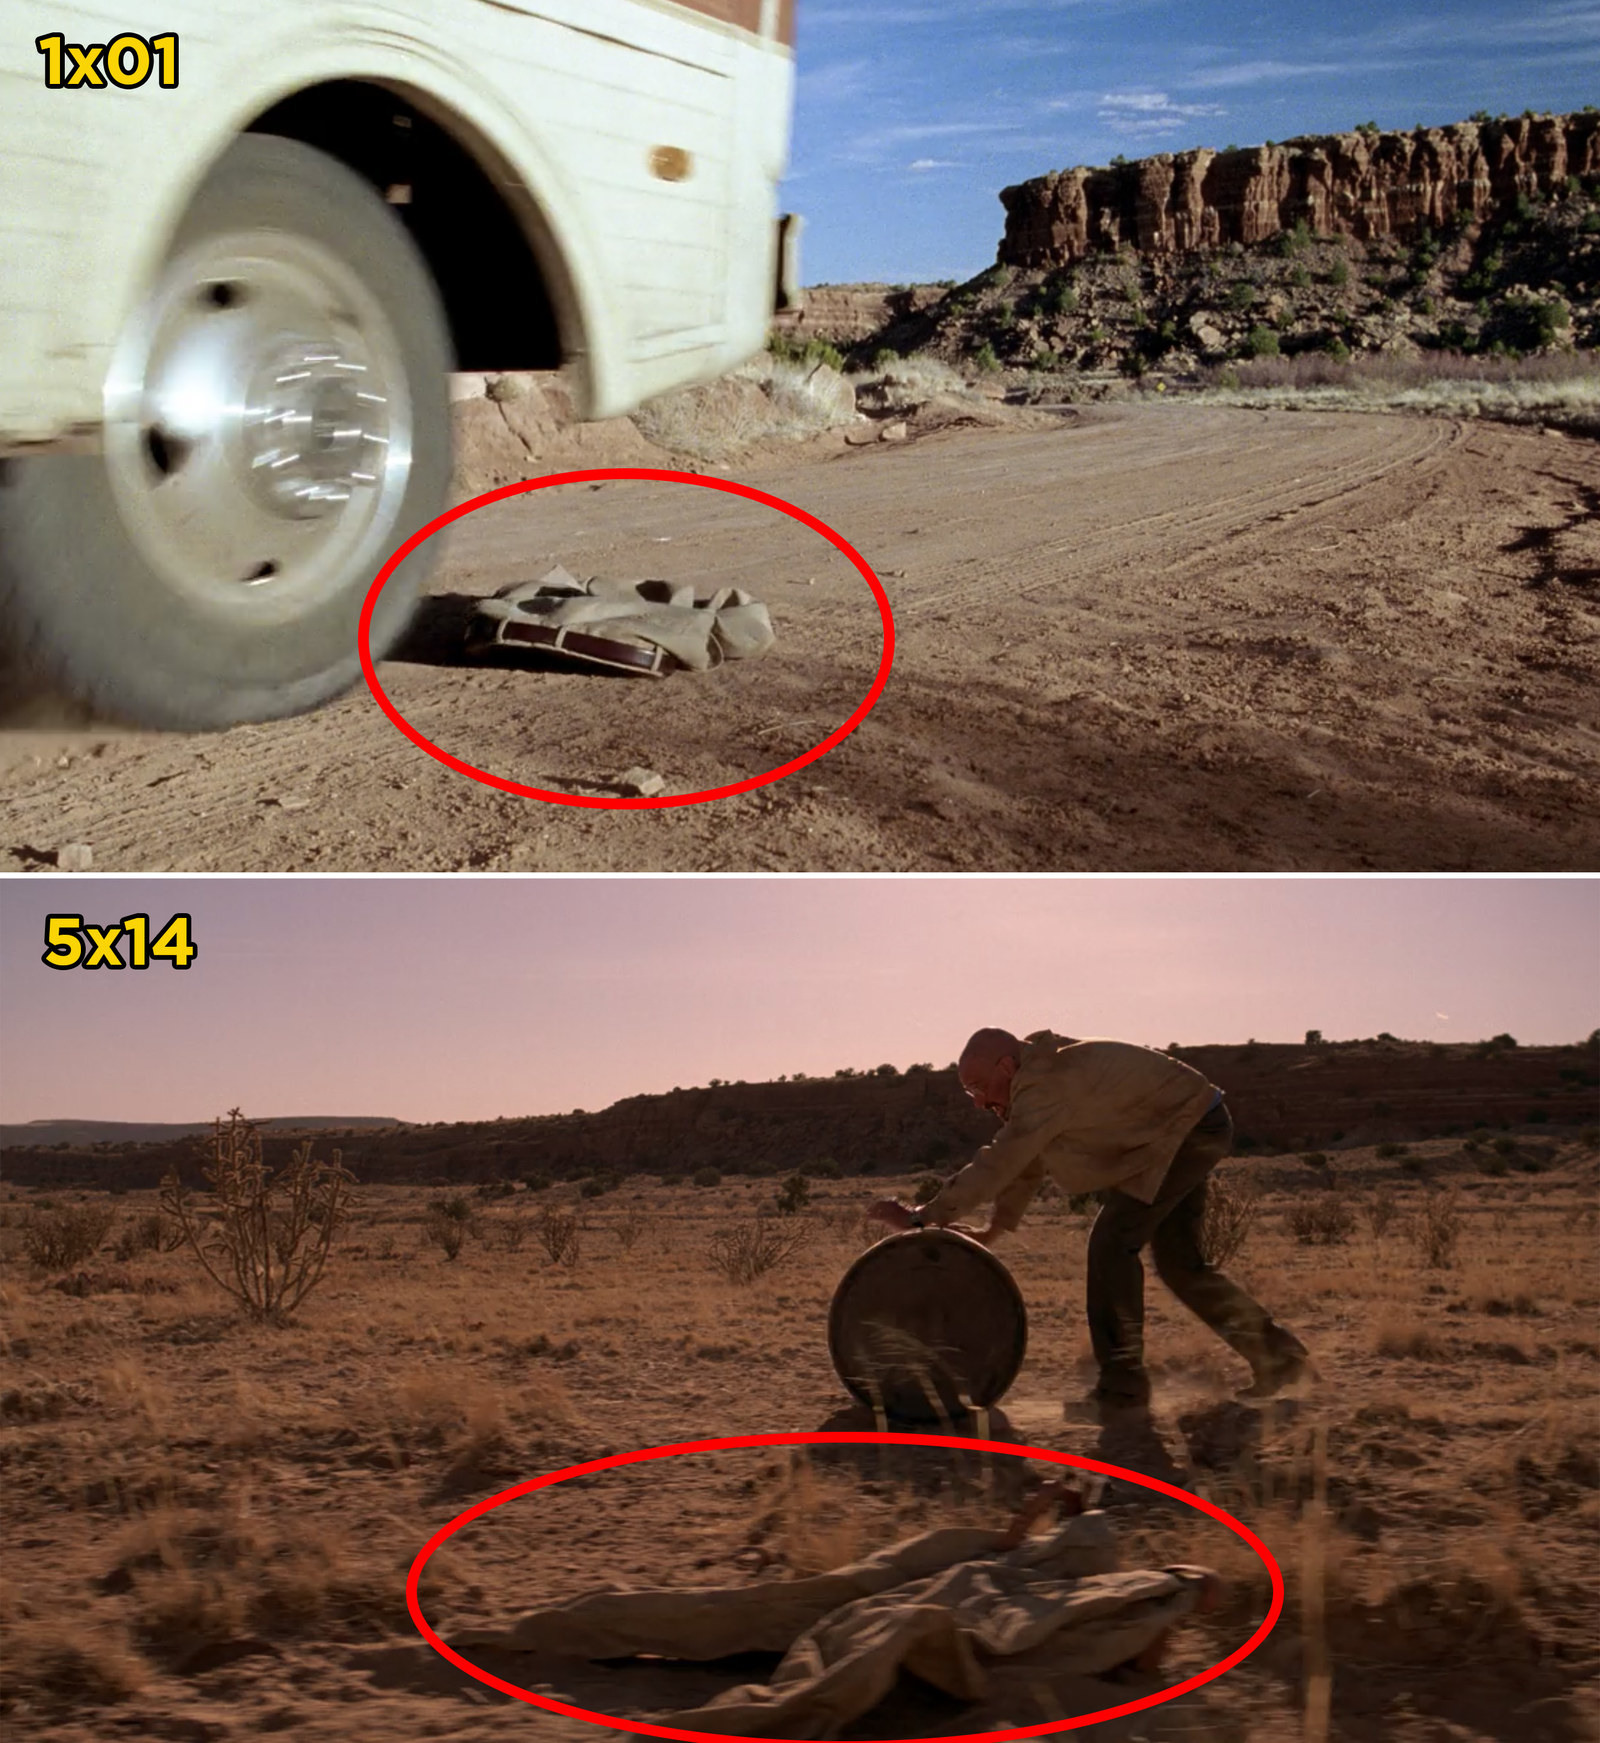 Also in  Breaking Bad , the pair of pants that Walter loses in the desert during the pilot reappear when Walter passes them during the final season.